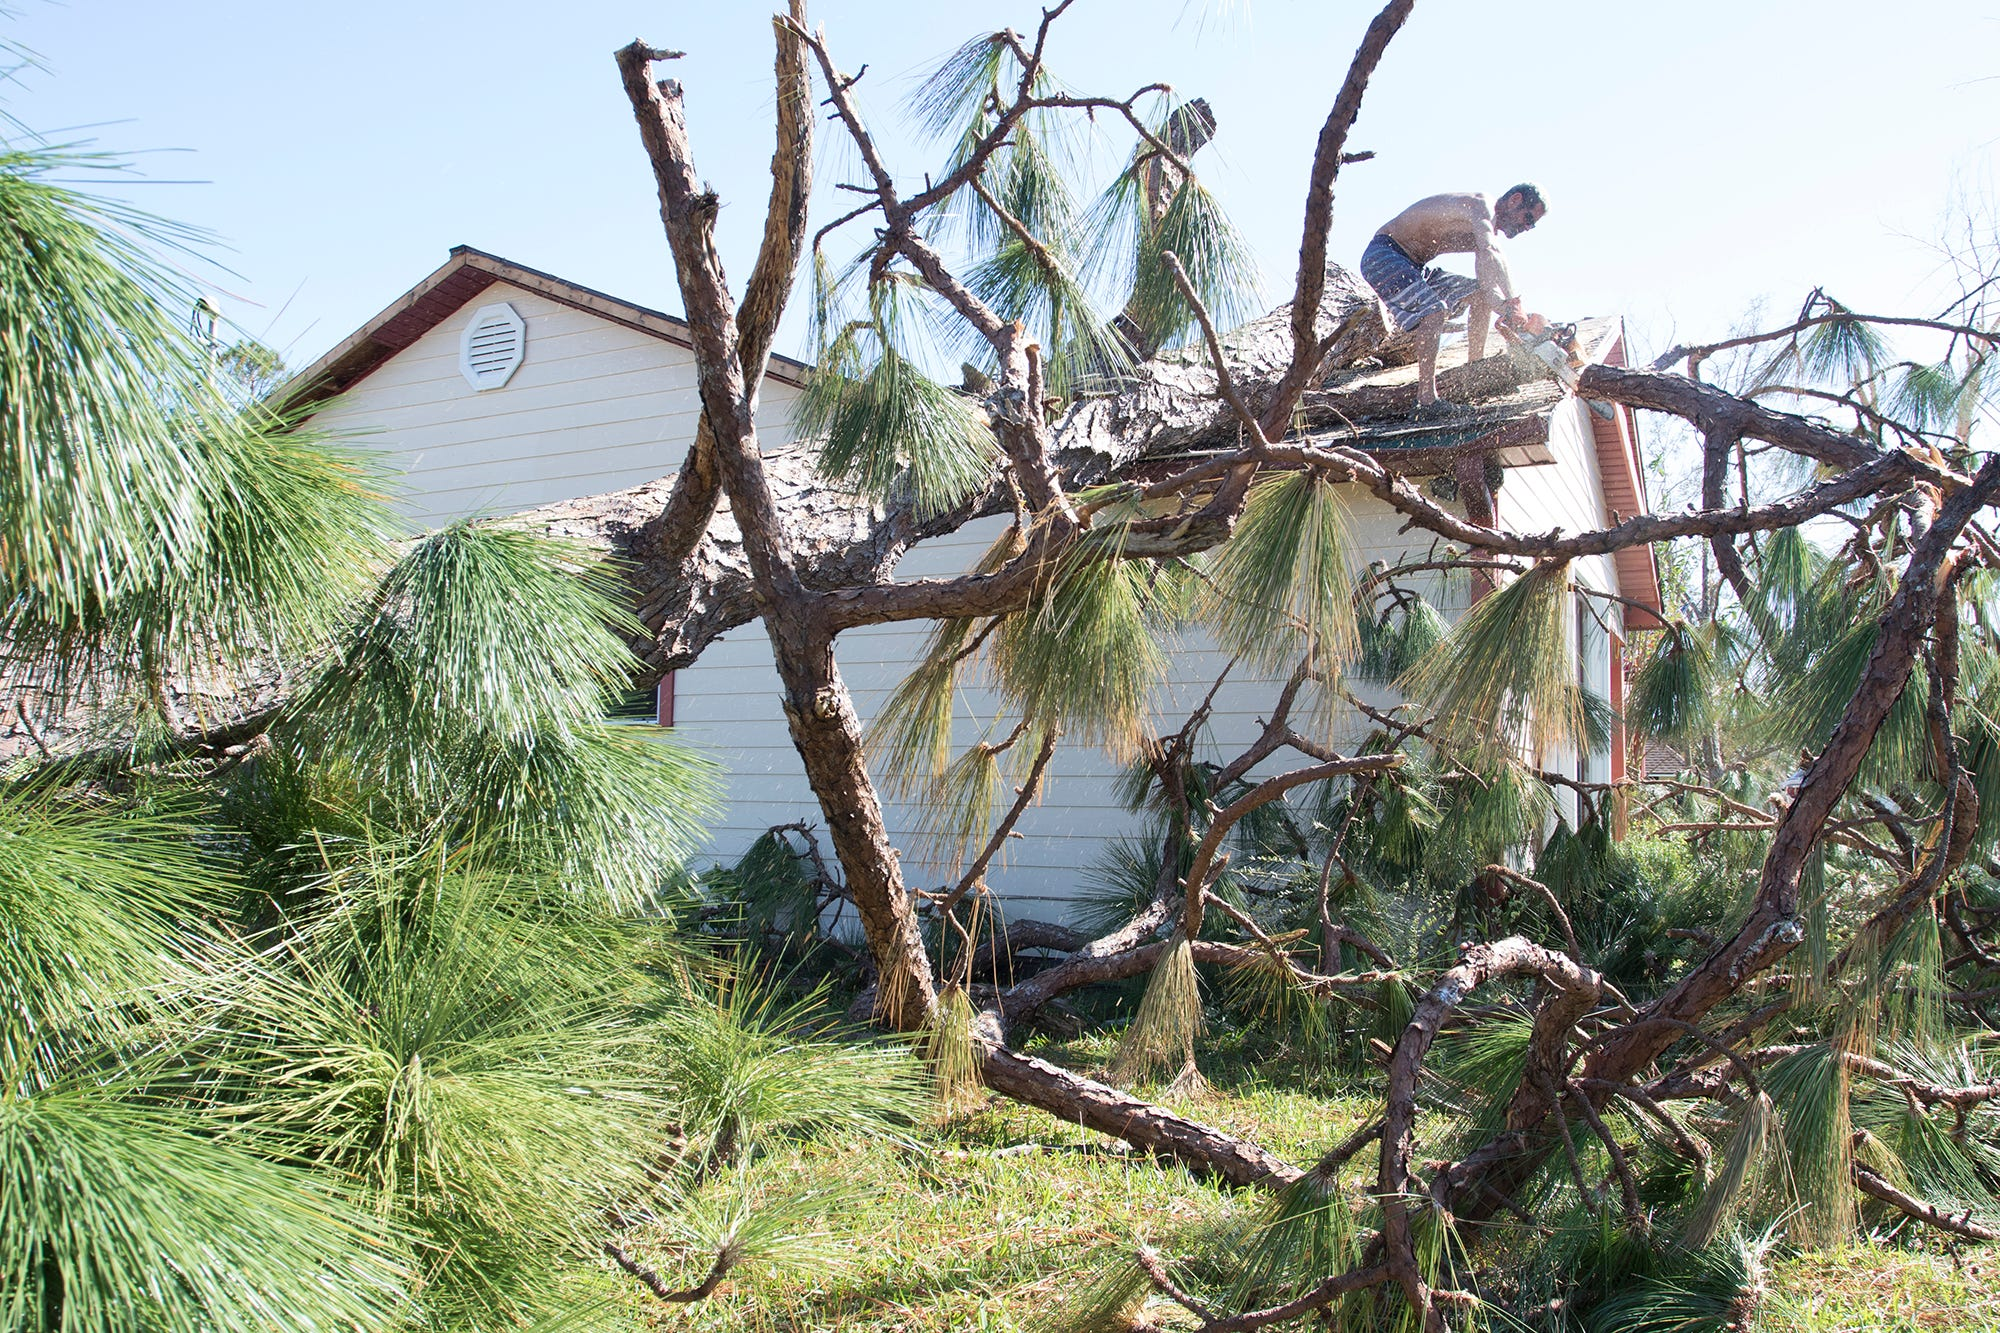 Jack Certalich removes a fallen tree from his house after Hurricane Michael in Northwest St. Andrews section of Panama City, Fla on Tuesday, Oct. 16, 2018.